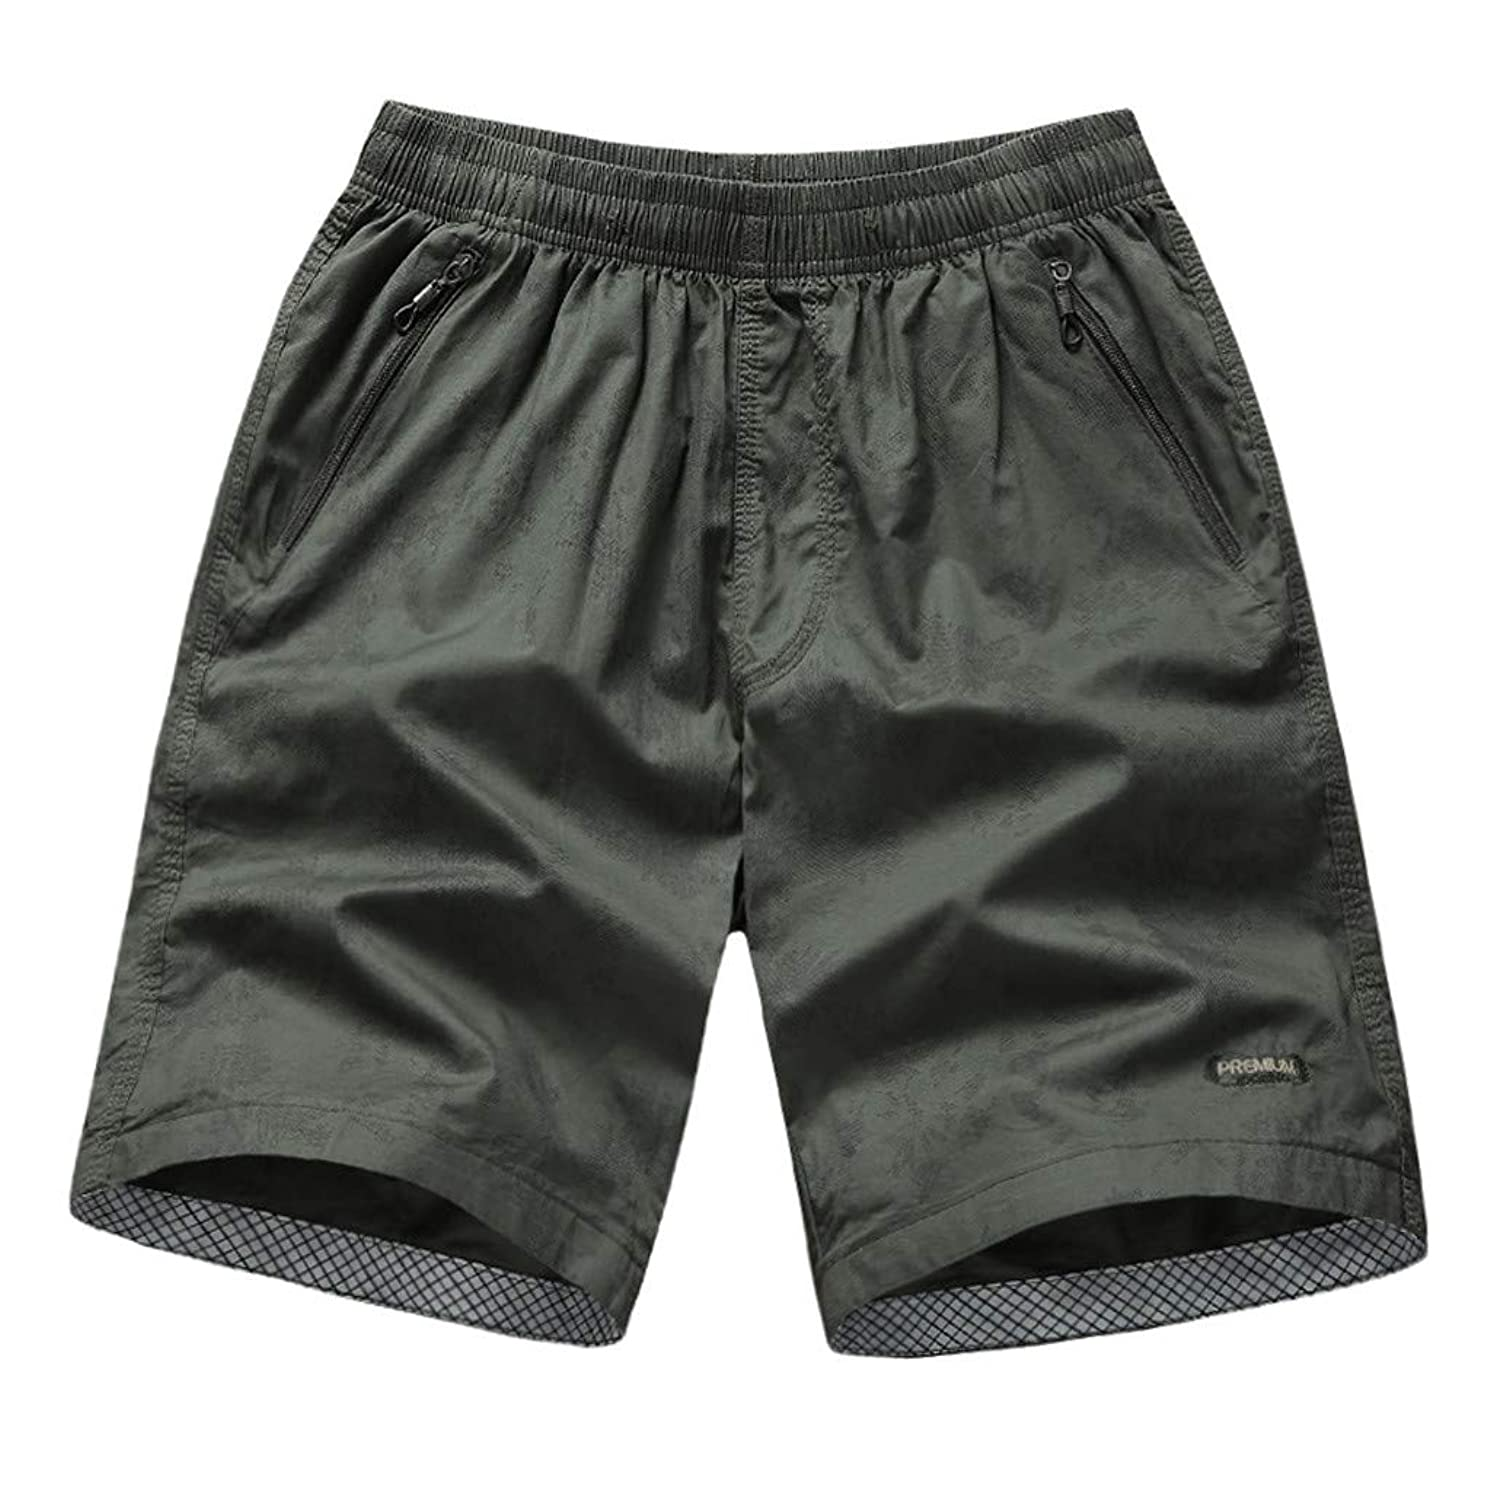 Mens Shorts Cargo Big and Tall Loose Fit Mens Shorts Casual with Zipper Pockets